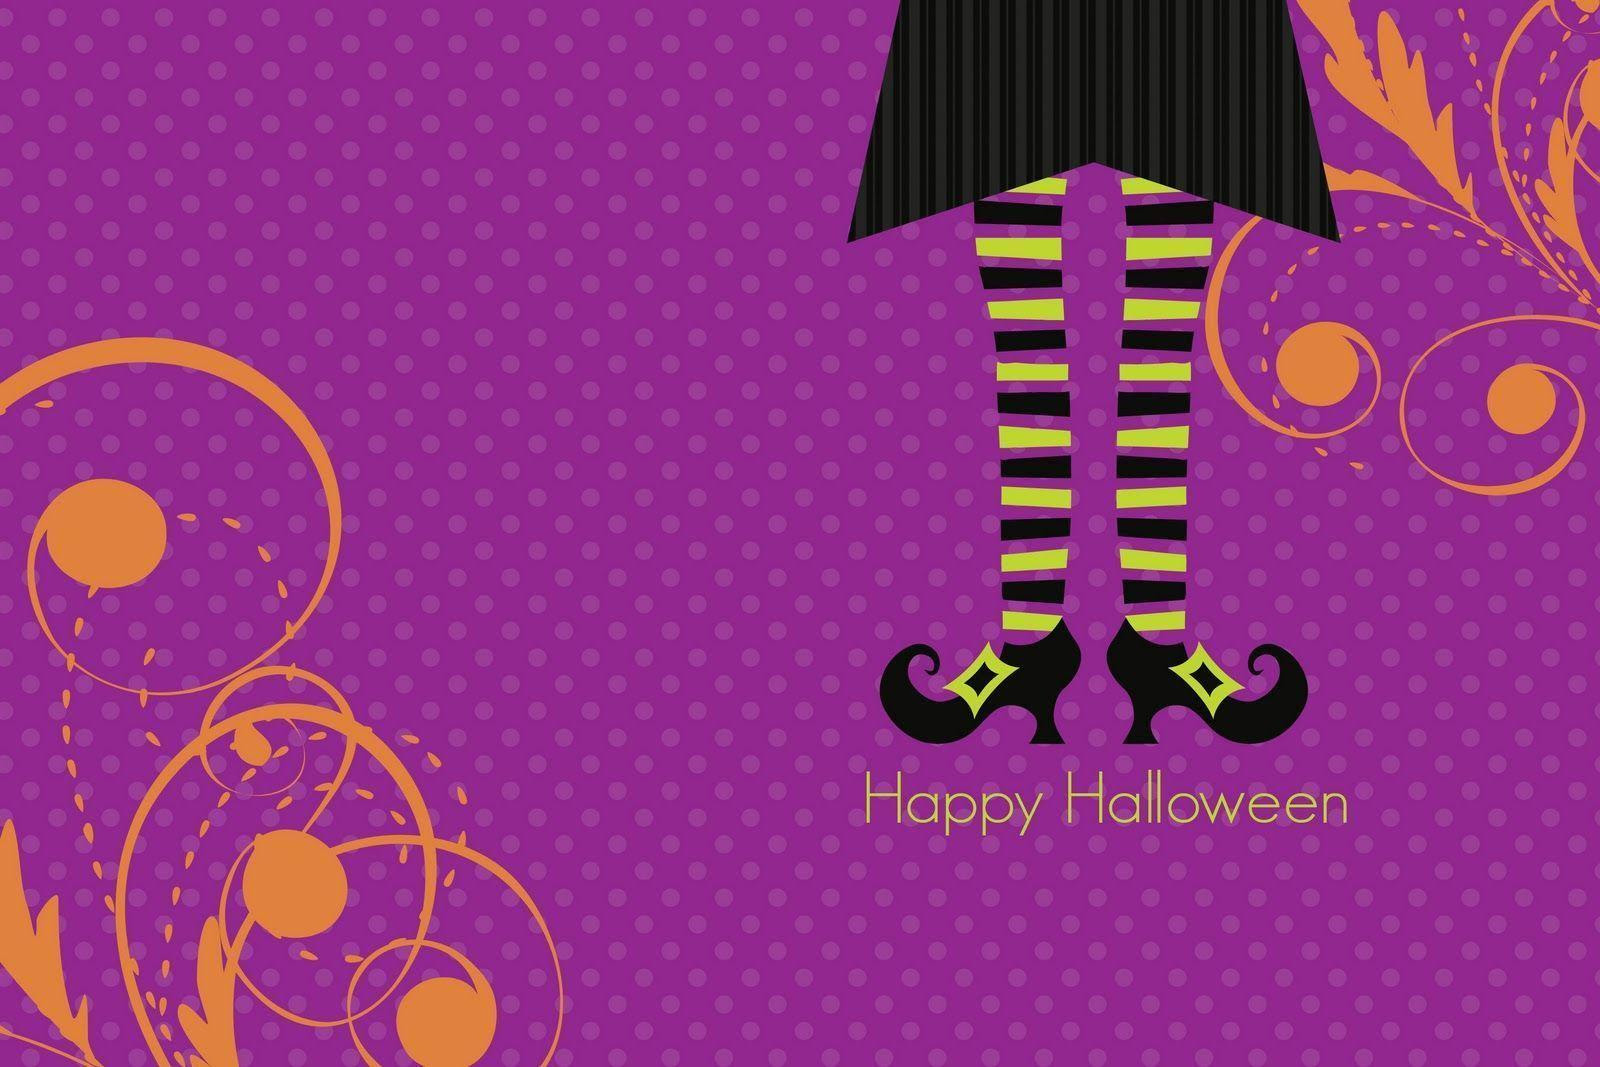 Cute Halloween Desktop Wallpapers  Wallpaper Cave